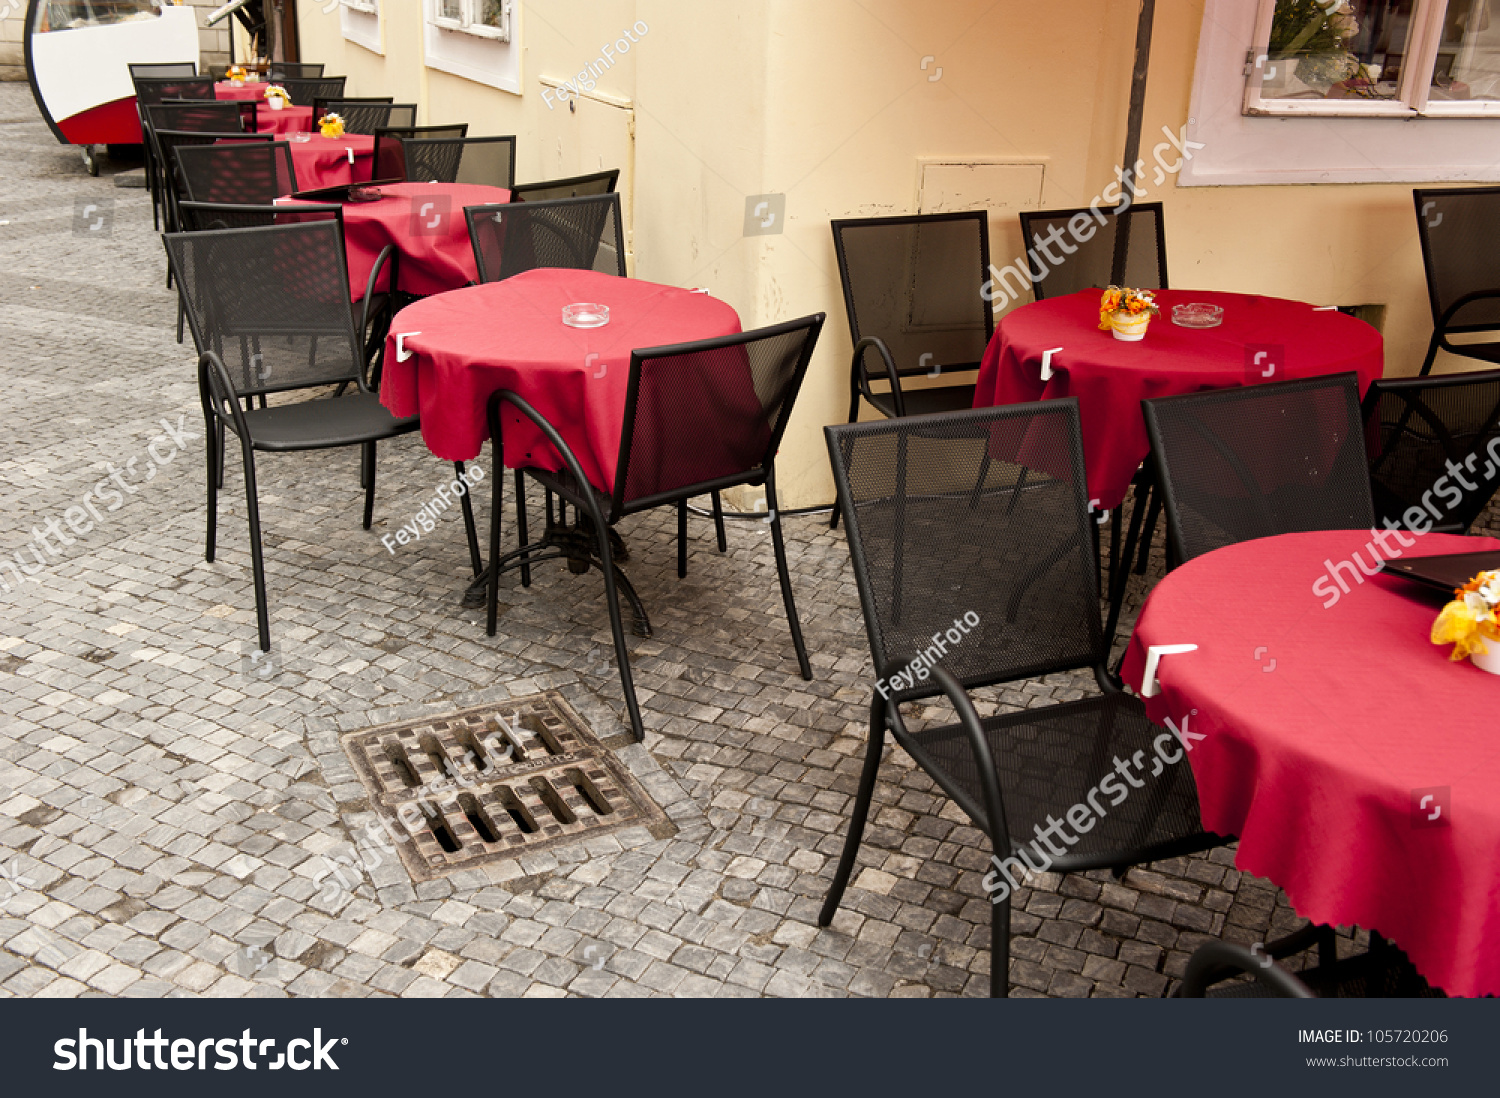 Patio Setup A Color Of Restaurant Patio Setup Stock Photo